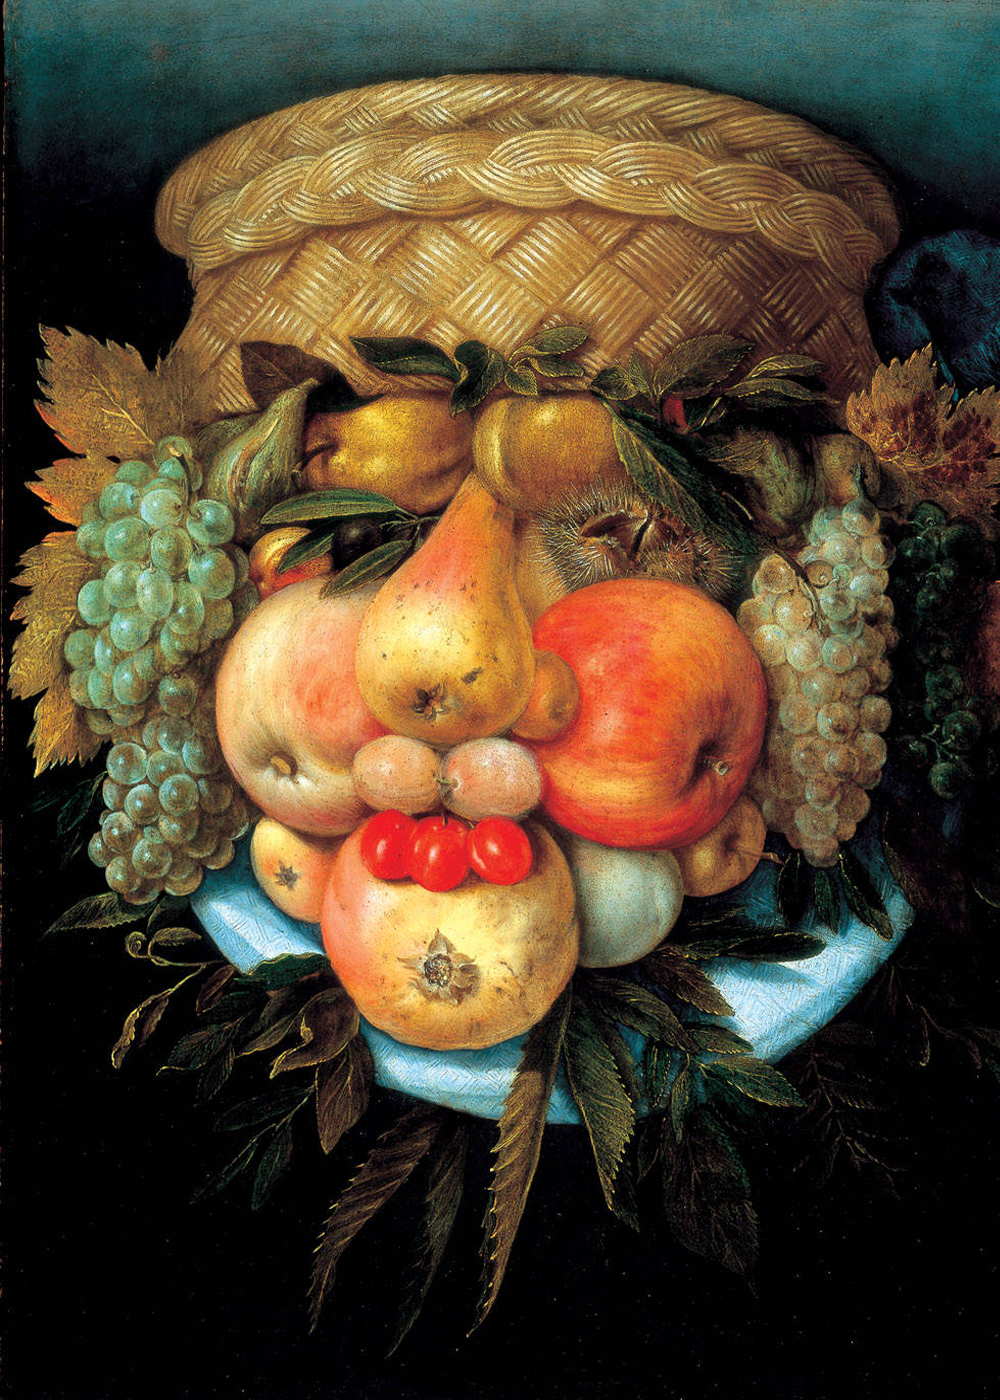 https://upload.wikimedia.org/wikipedia/commons/7/7c/Giuseppe_Arcimboldo_-_Fruit_Basket.jpg